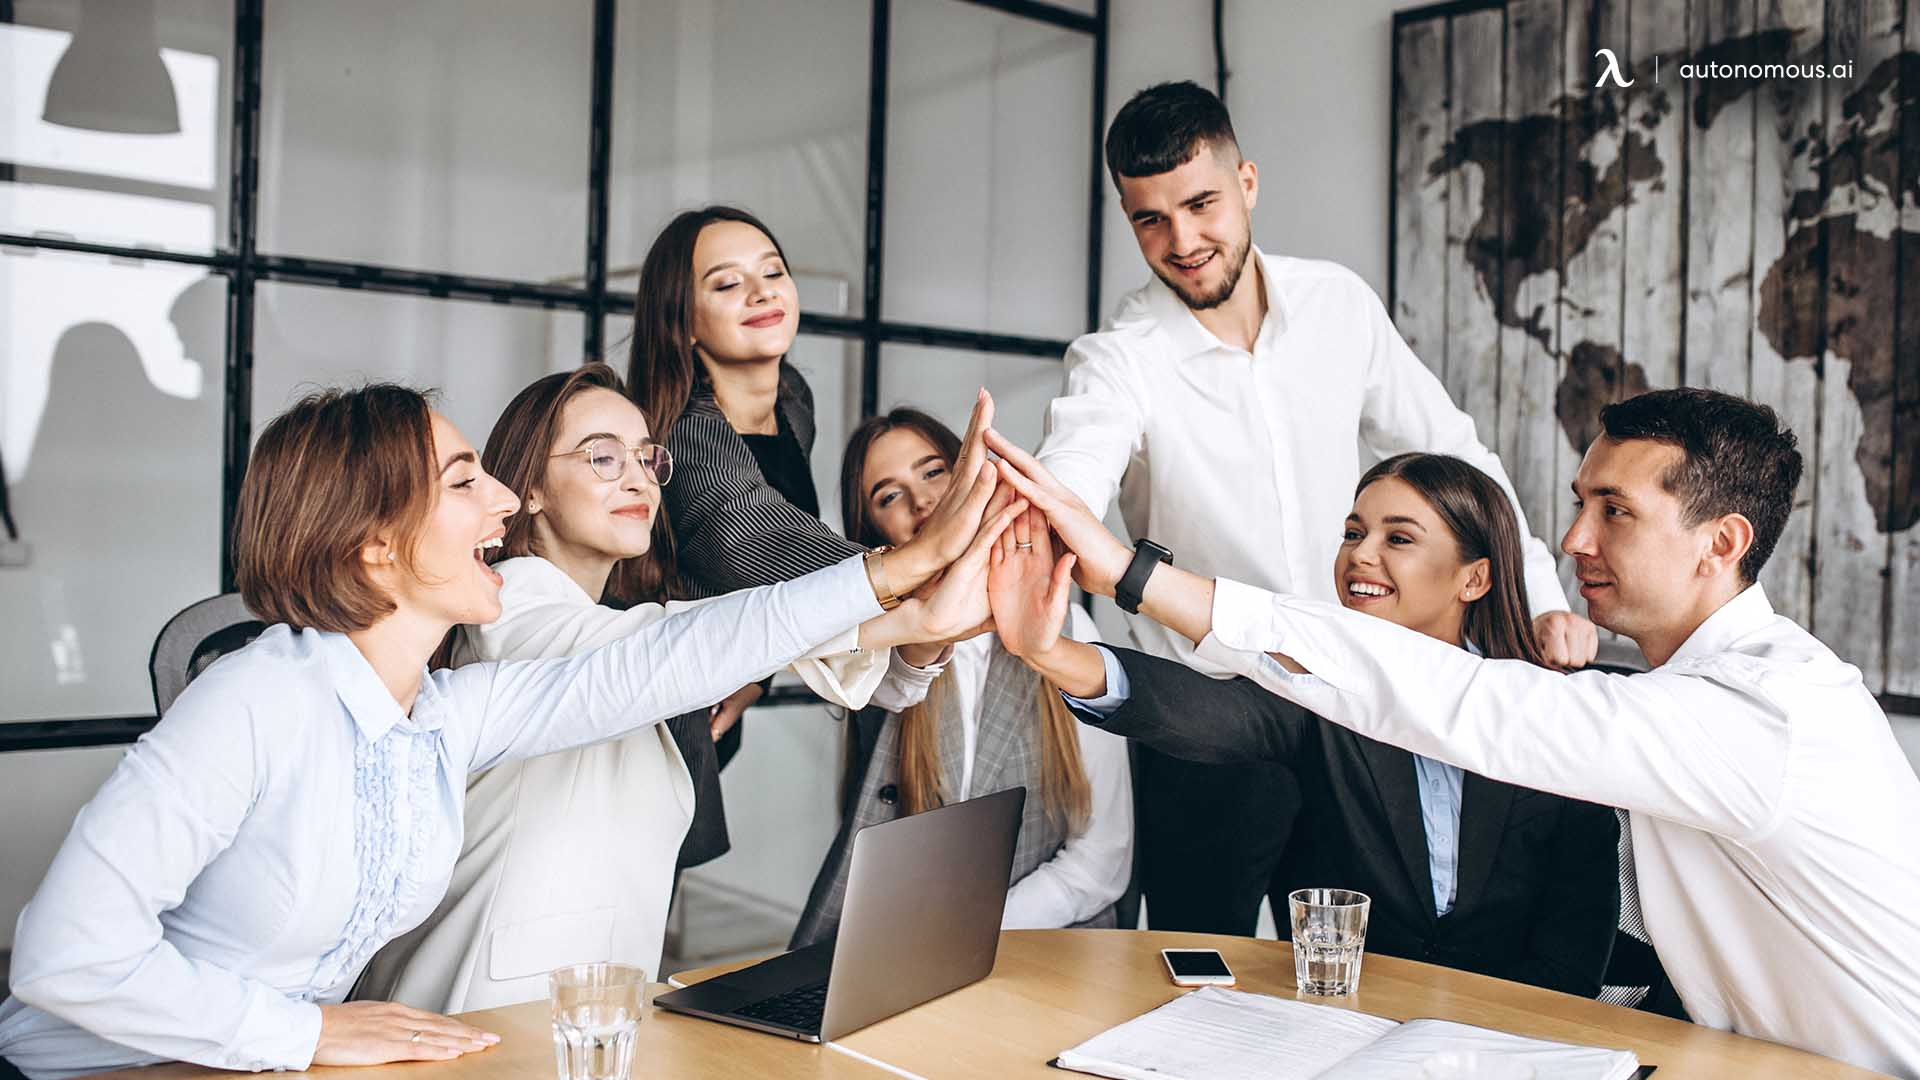 Get Support from a Co-worker